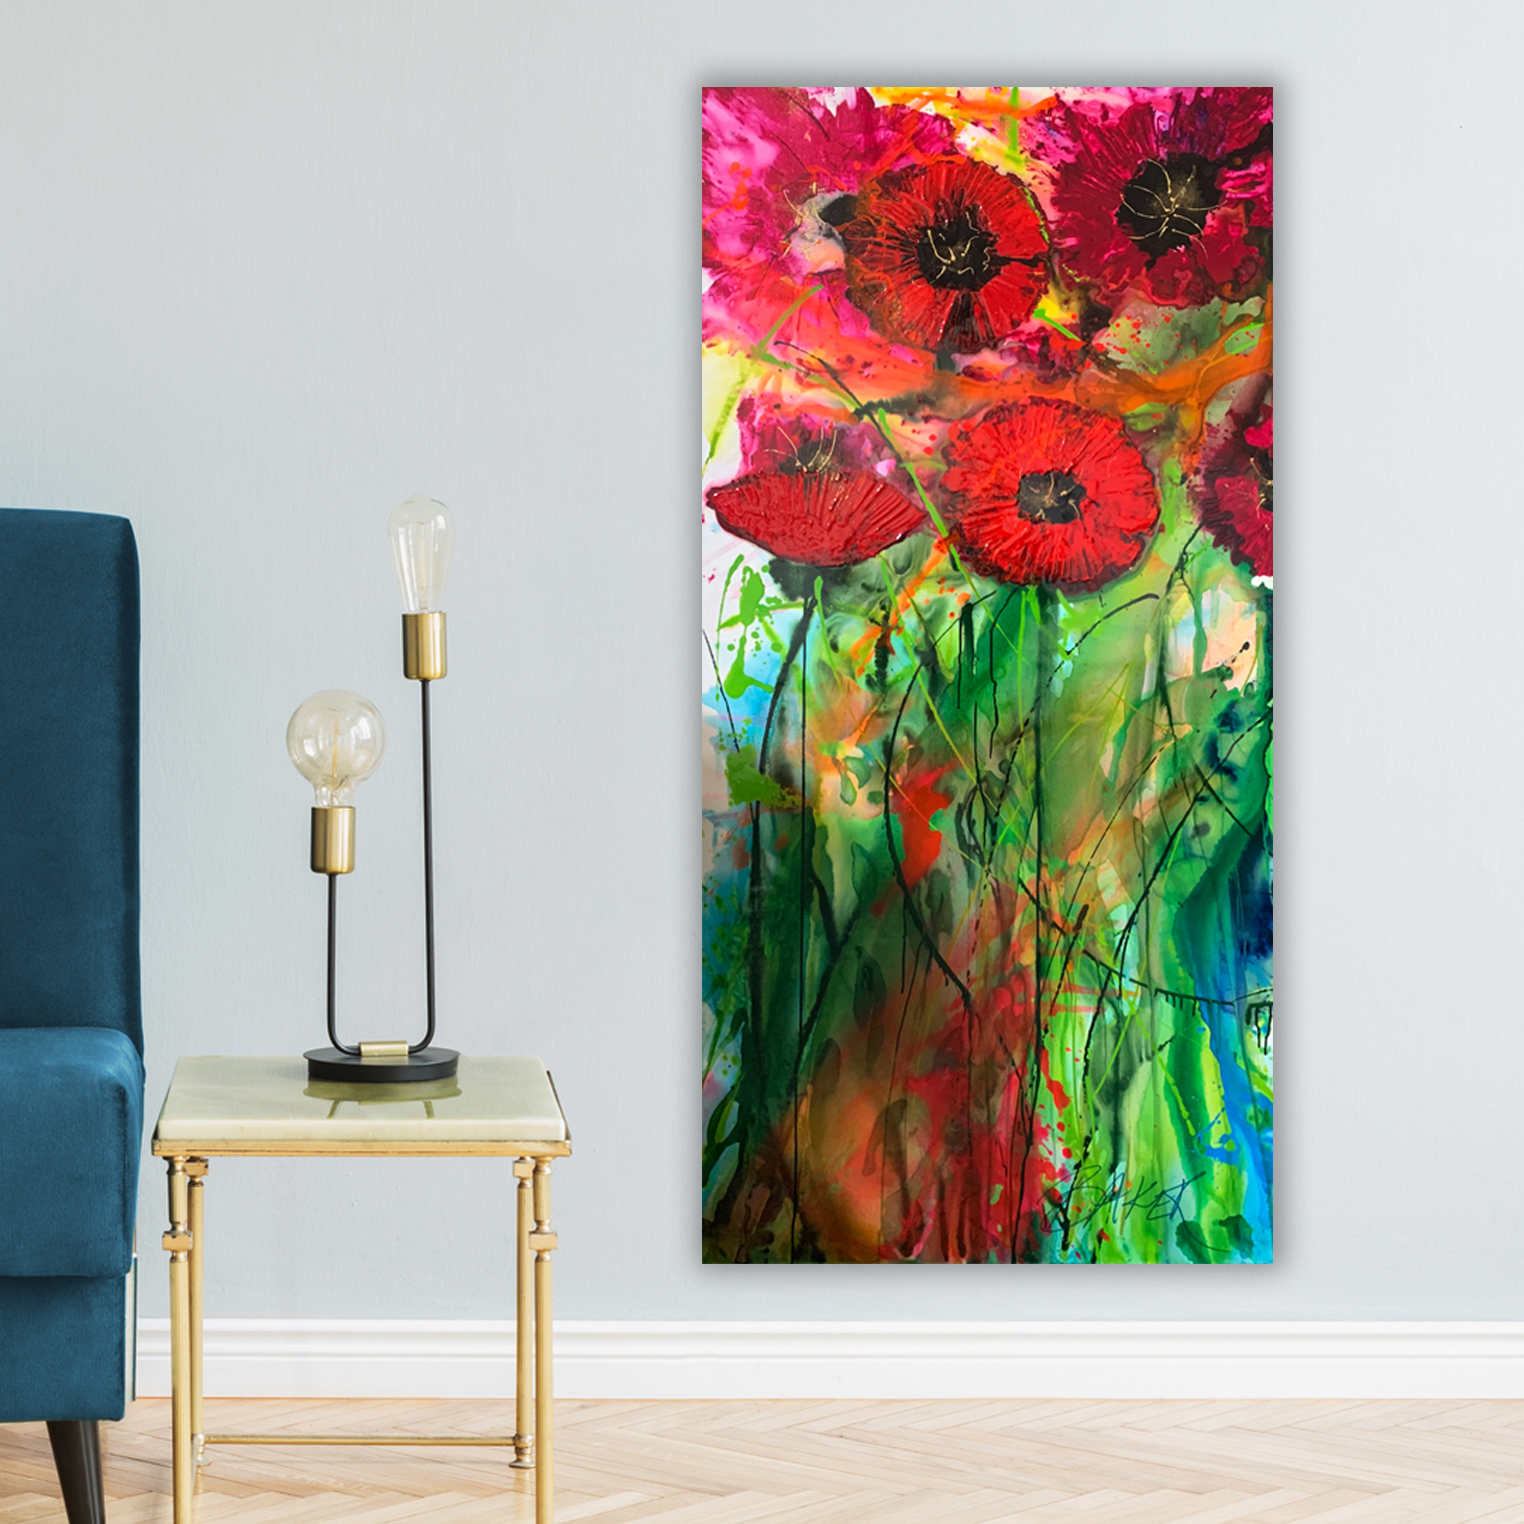 Cartel Poppies by Australian artists Nicole Baker and Jessica Skye Baker